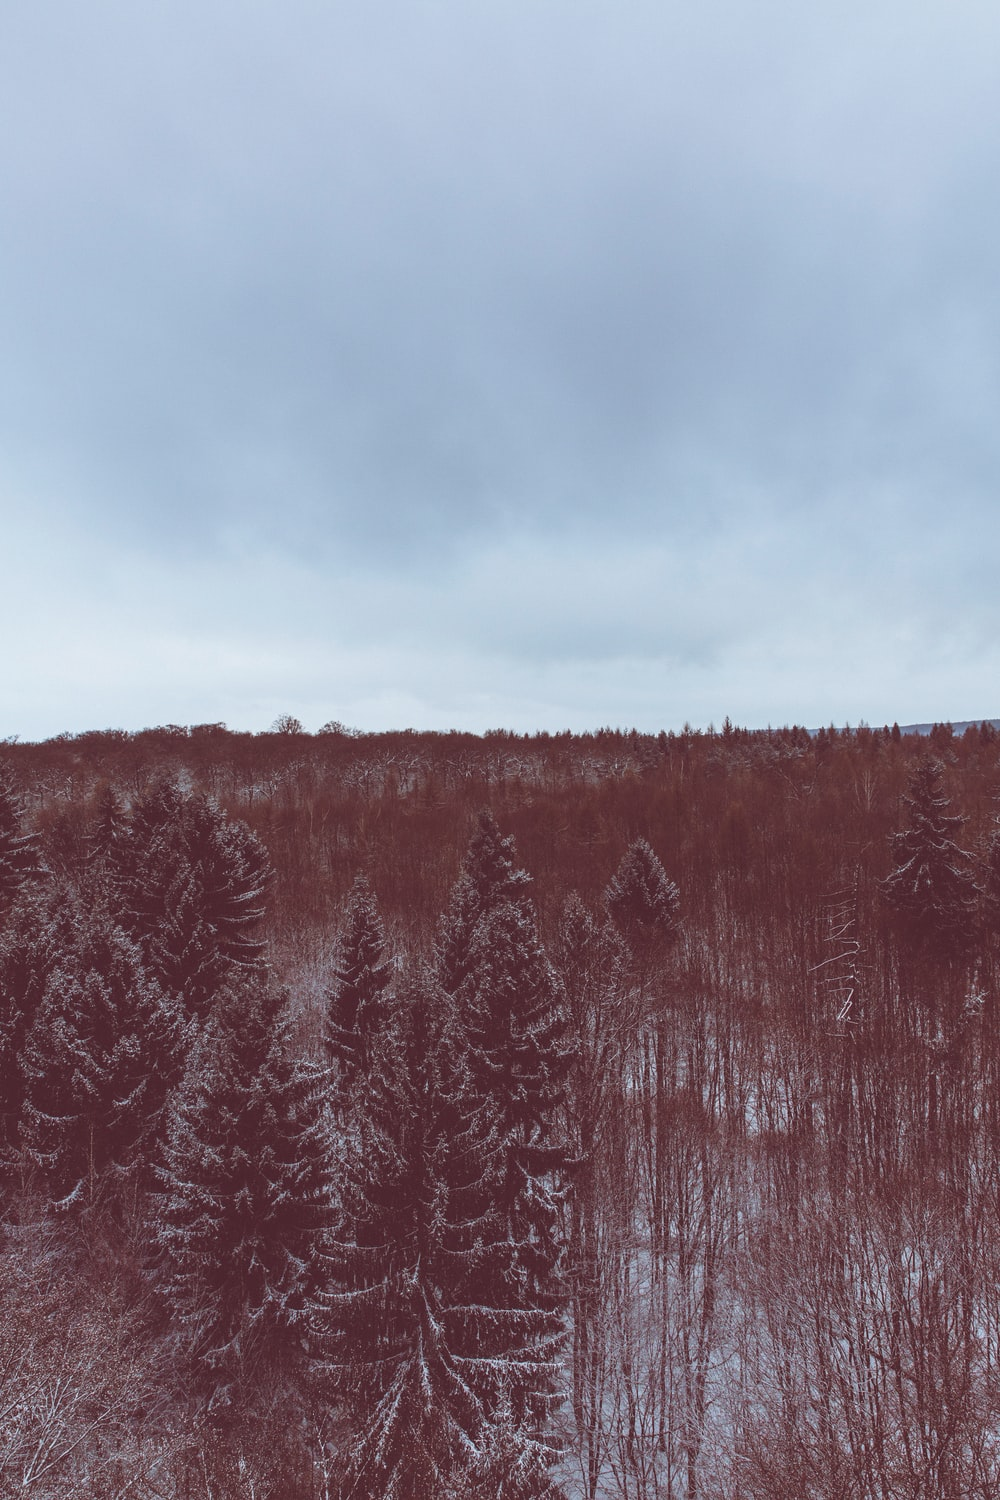 A red-hued shot of an evergreen forest under snow